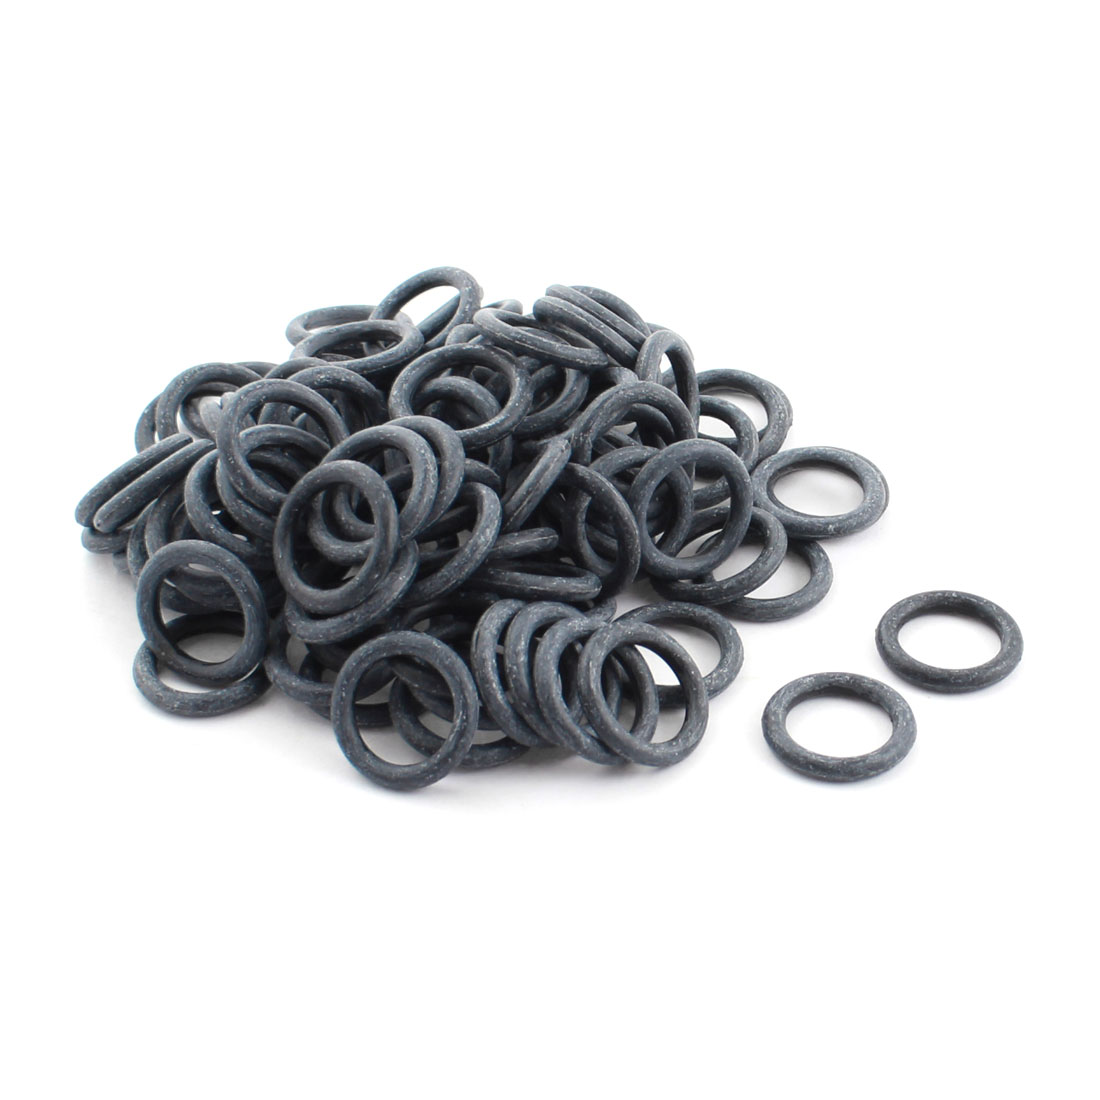 RC Propeller Brushless Motor Part Gray Rubber Seal O Ring Spacer Gasket Washer 20mm x 14mm x 3mm 100 Pcs